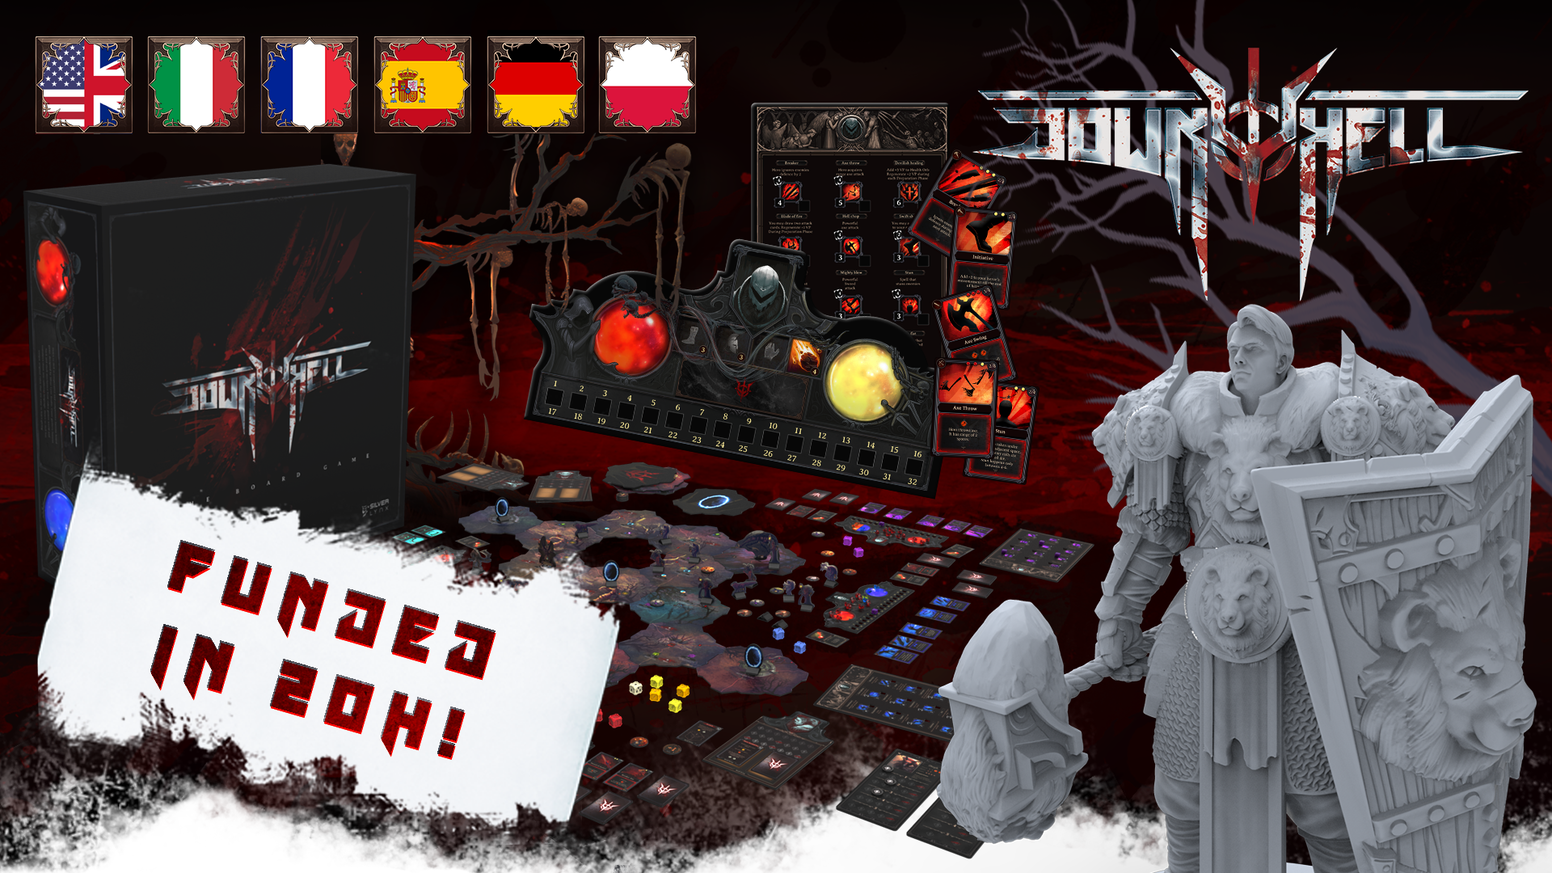 Down To Hell is a board game that faithfully reproduces popular hack and slash video games.